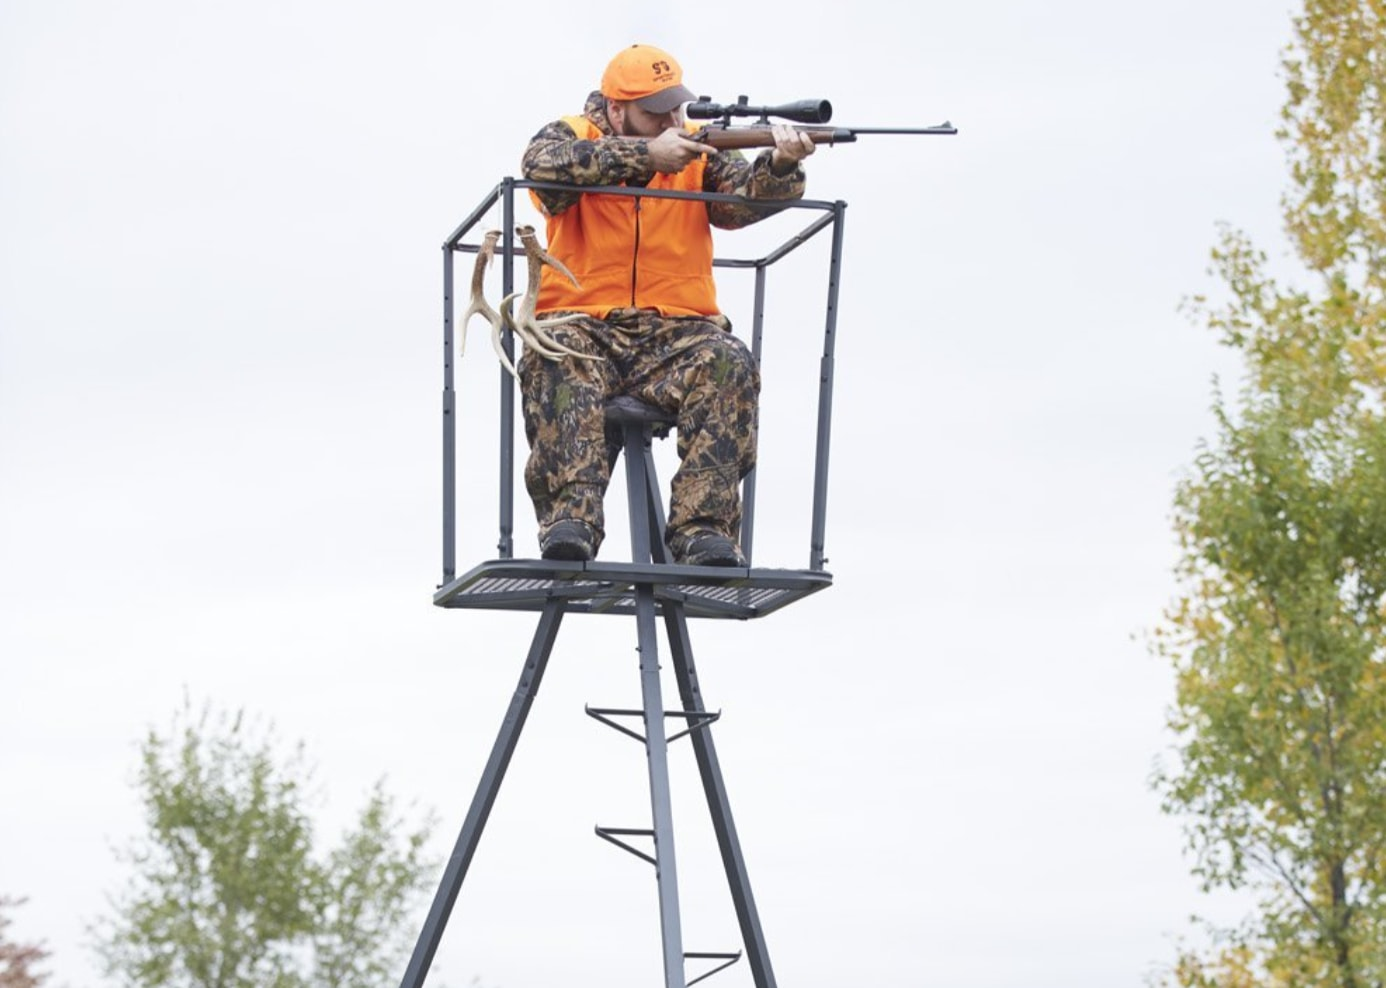 Top 5 Best Tripod Stands for Deer and Bow Hunting   Tripodyssey